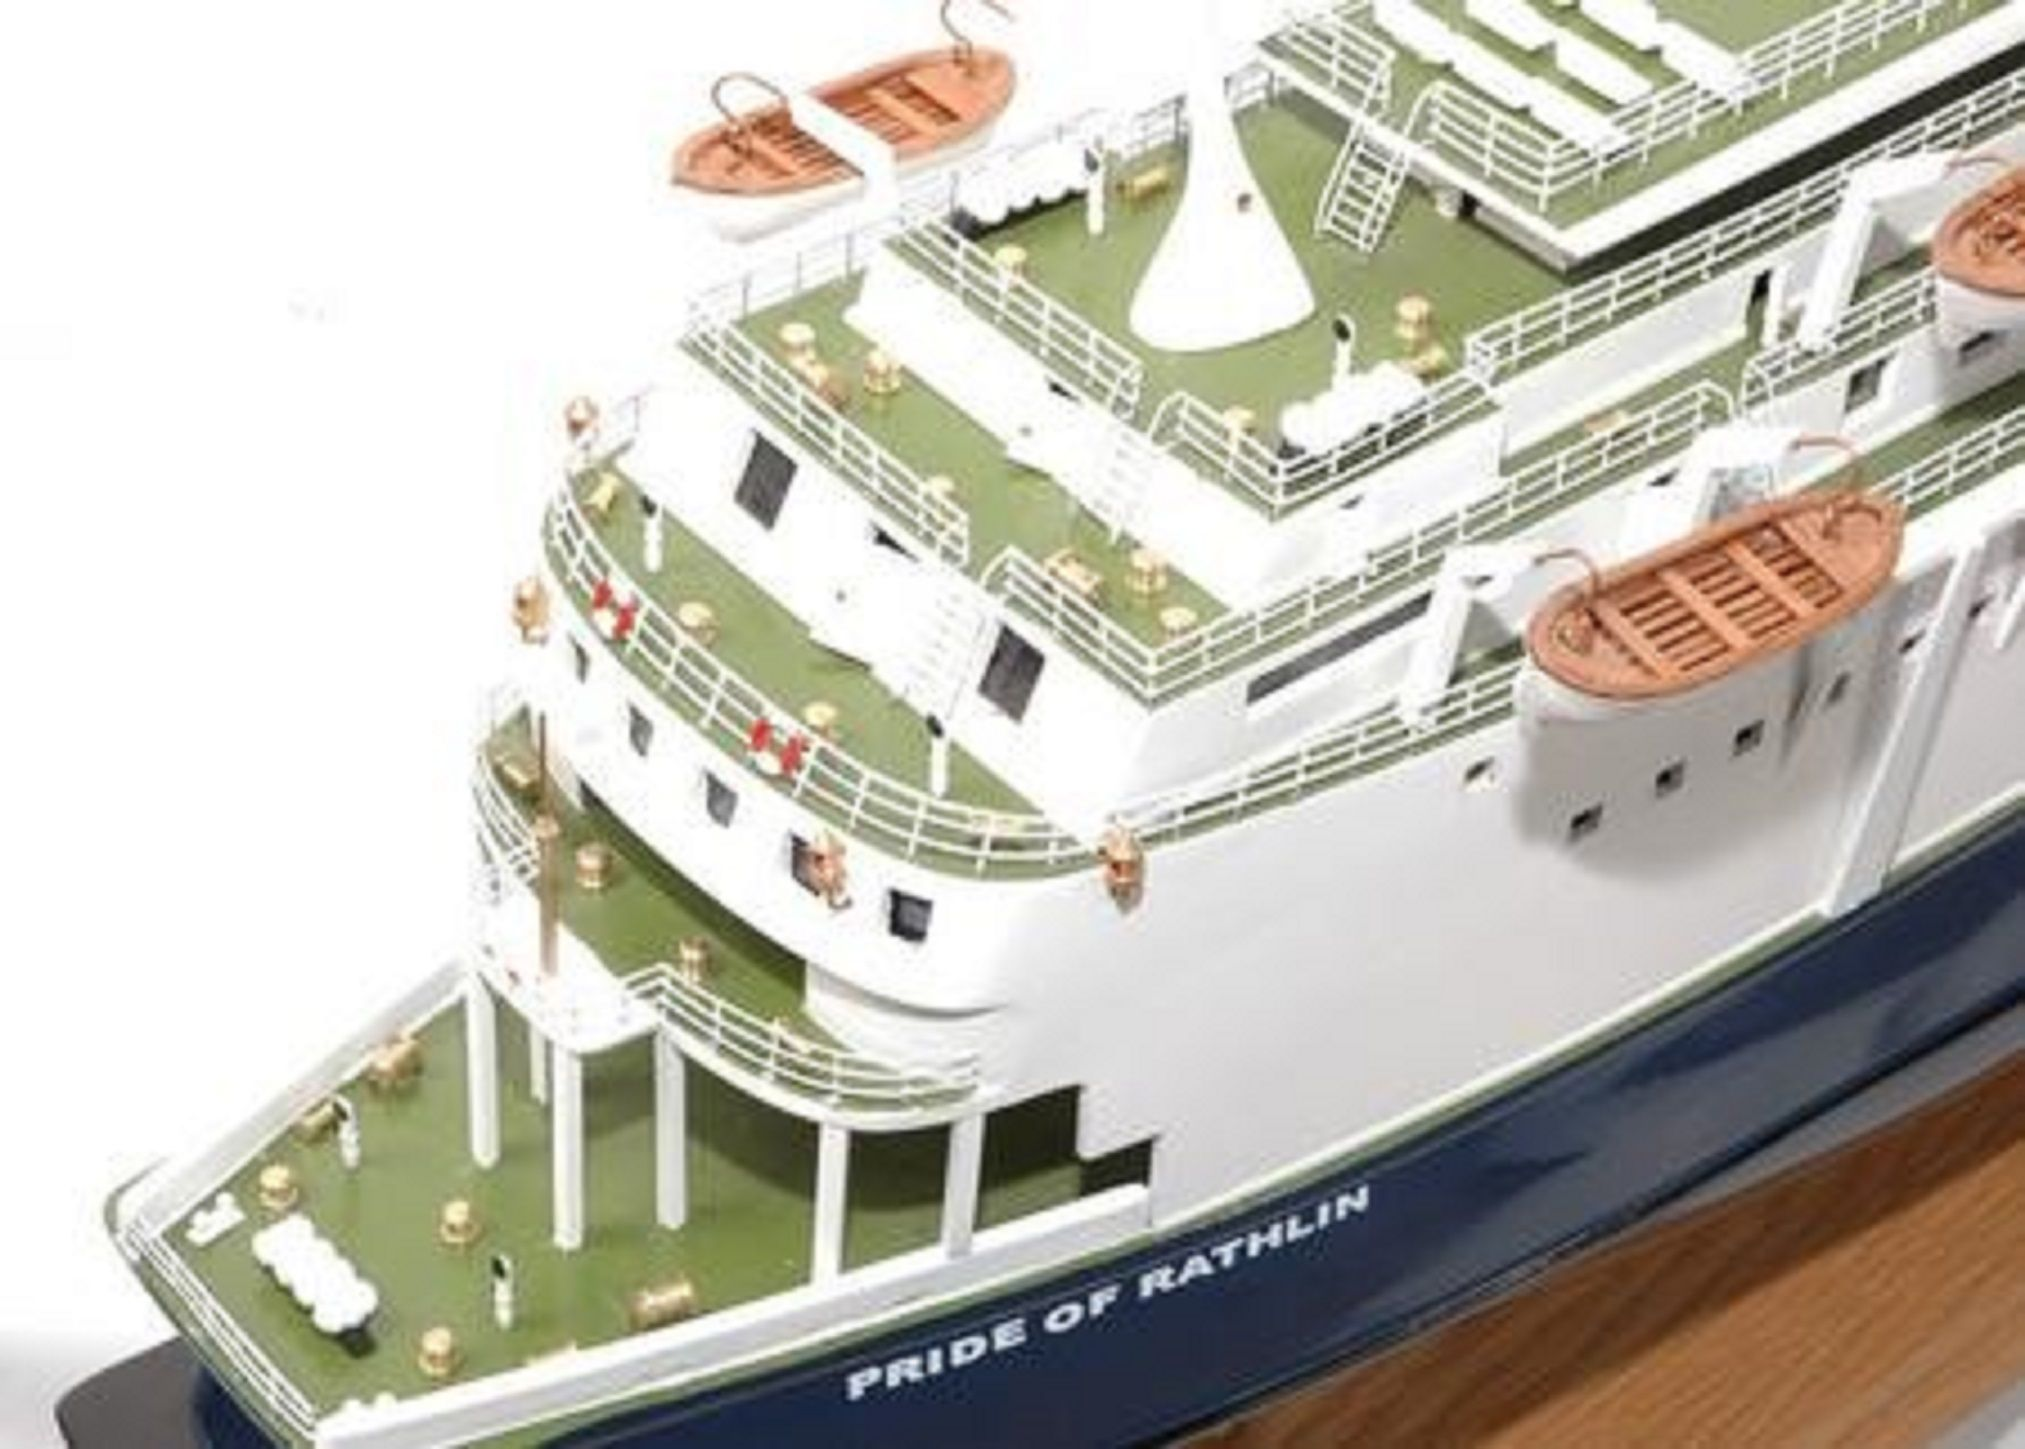 293-7554-P-O-model-ships-Pride-Aisla-and-Rathlin-Premier-Range